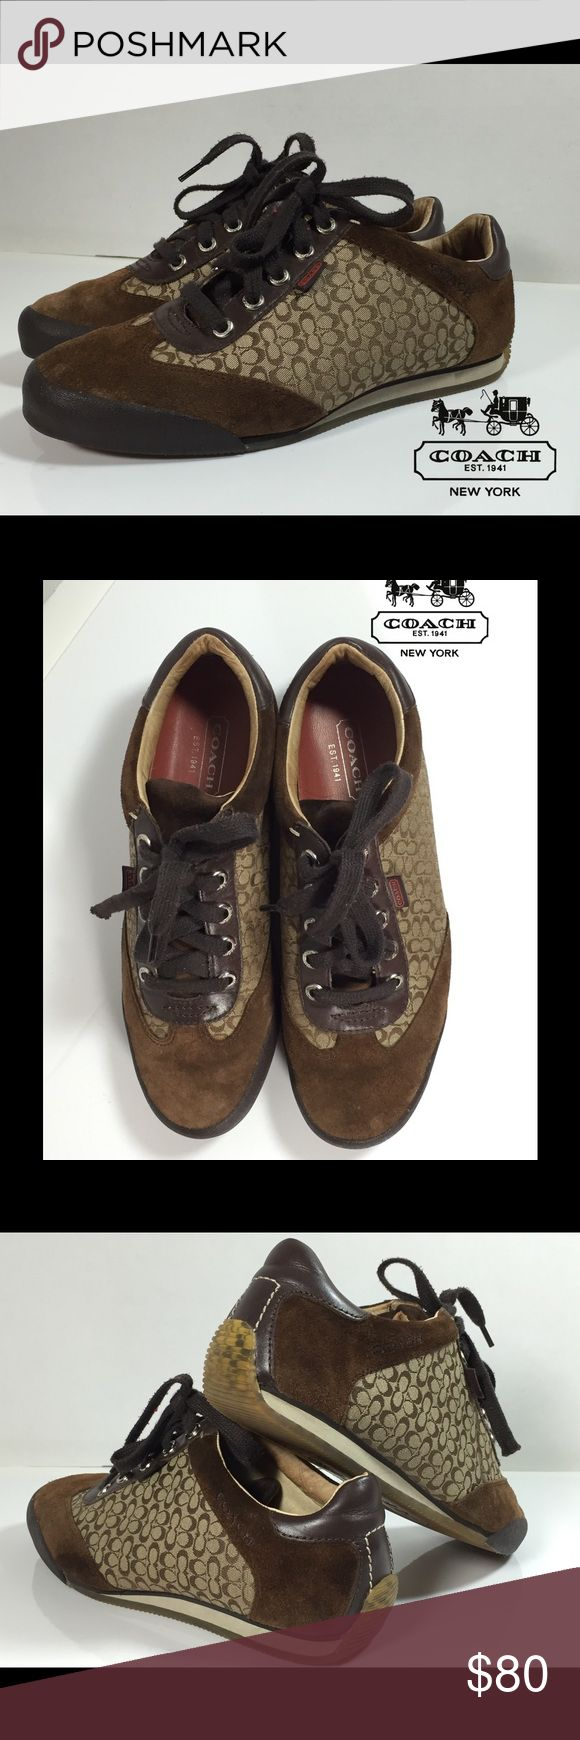 Suede Signature Coach Sneakers Chocolate brown suede signature Coach sneakers 👟   DESIGNER: Coach   RETAIL PRICE: $195. PRICE: $80. SIZE: 7.5 CONDITION: Gently Used DAMAGES: None Psst… Tell-A-Friend, LLC guarantees that ALL items are 100% authentic. RETURN AND REFUND POLICY For return and refund policy details check our FAQ page. Coach Shoes Athletic Shoes